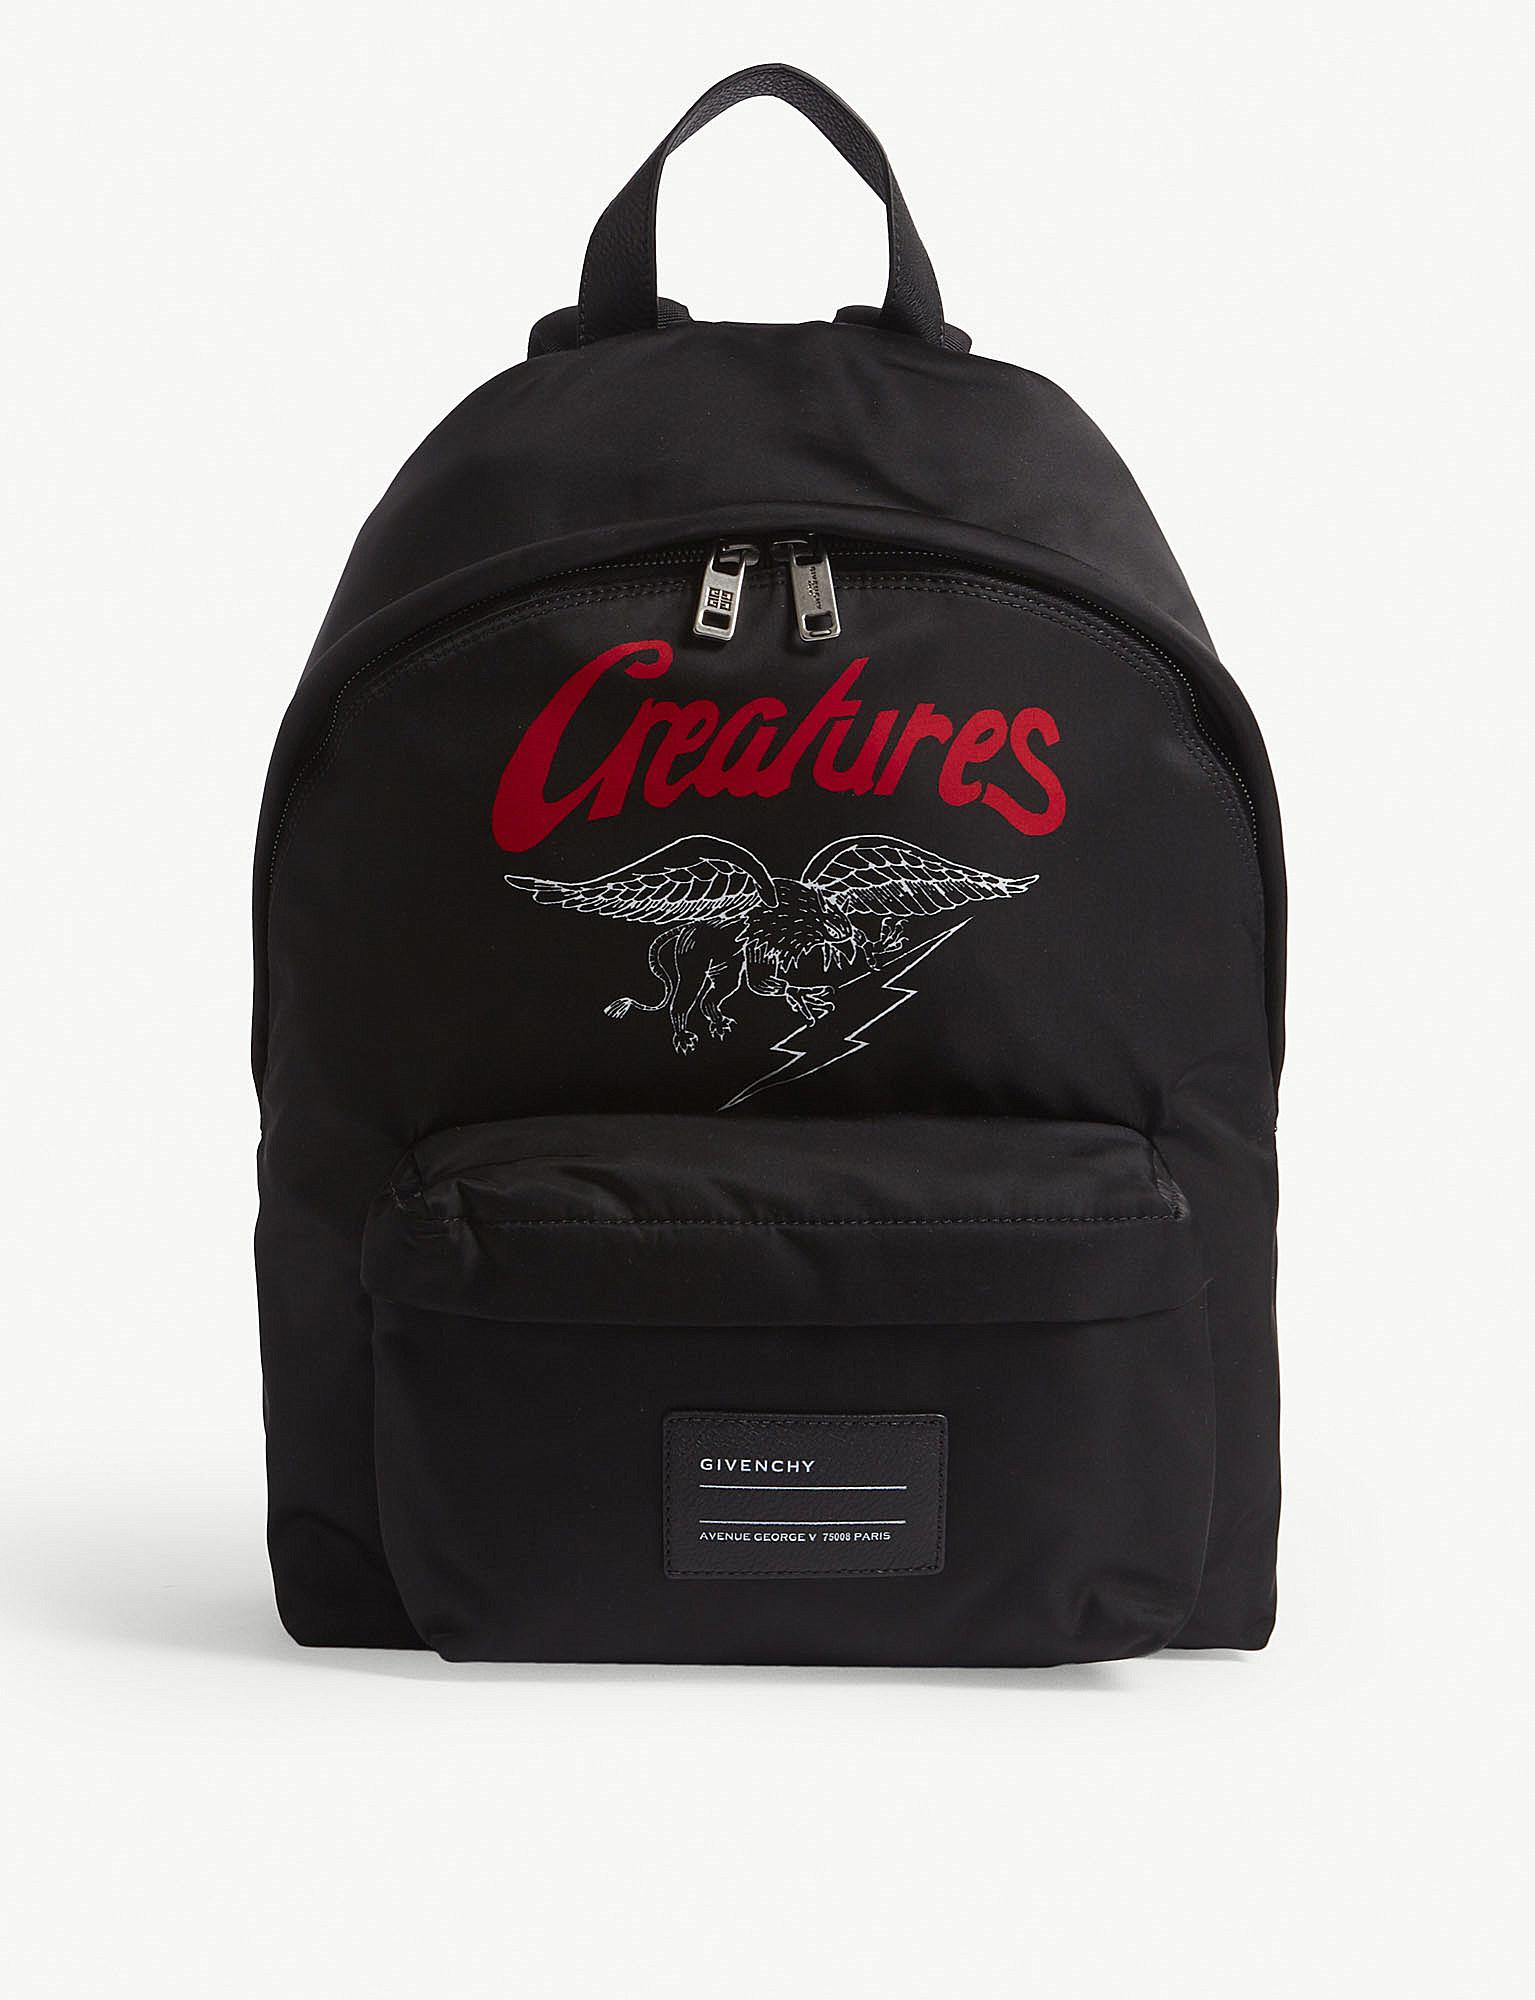 Givenchy Creatures motif backpack 87OzIO